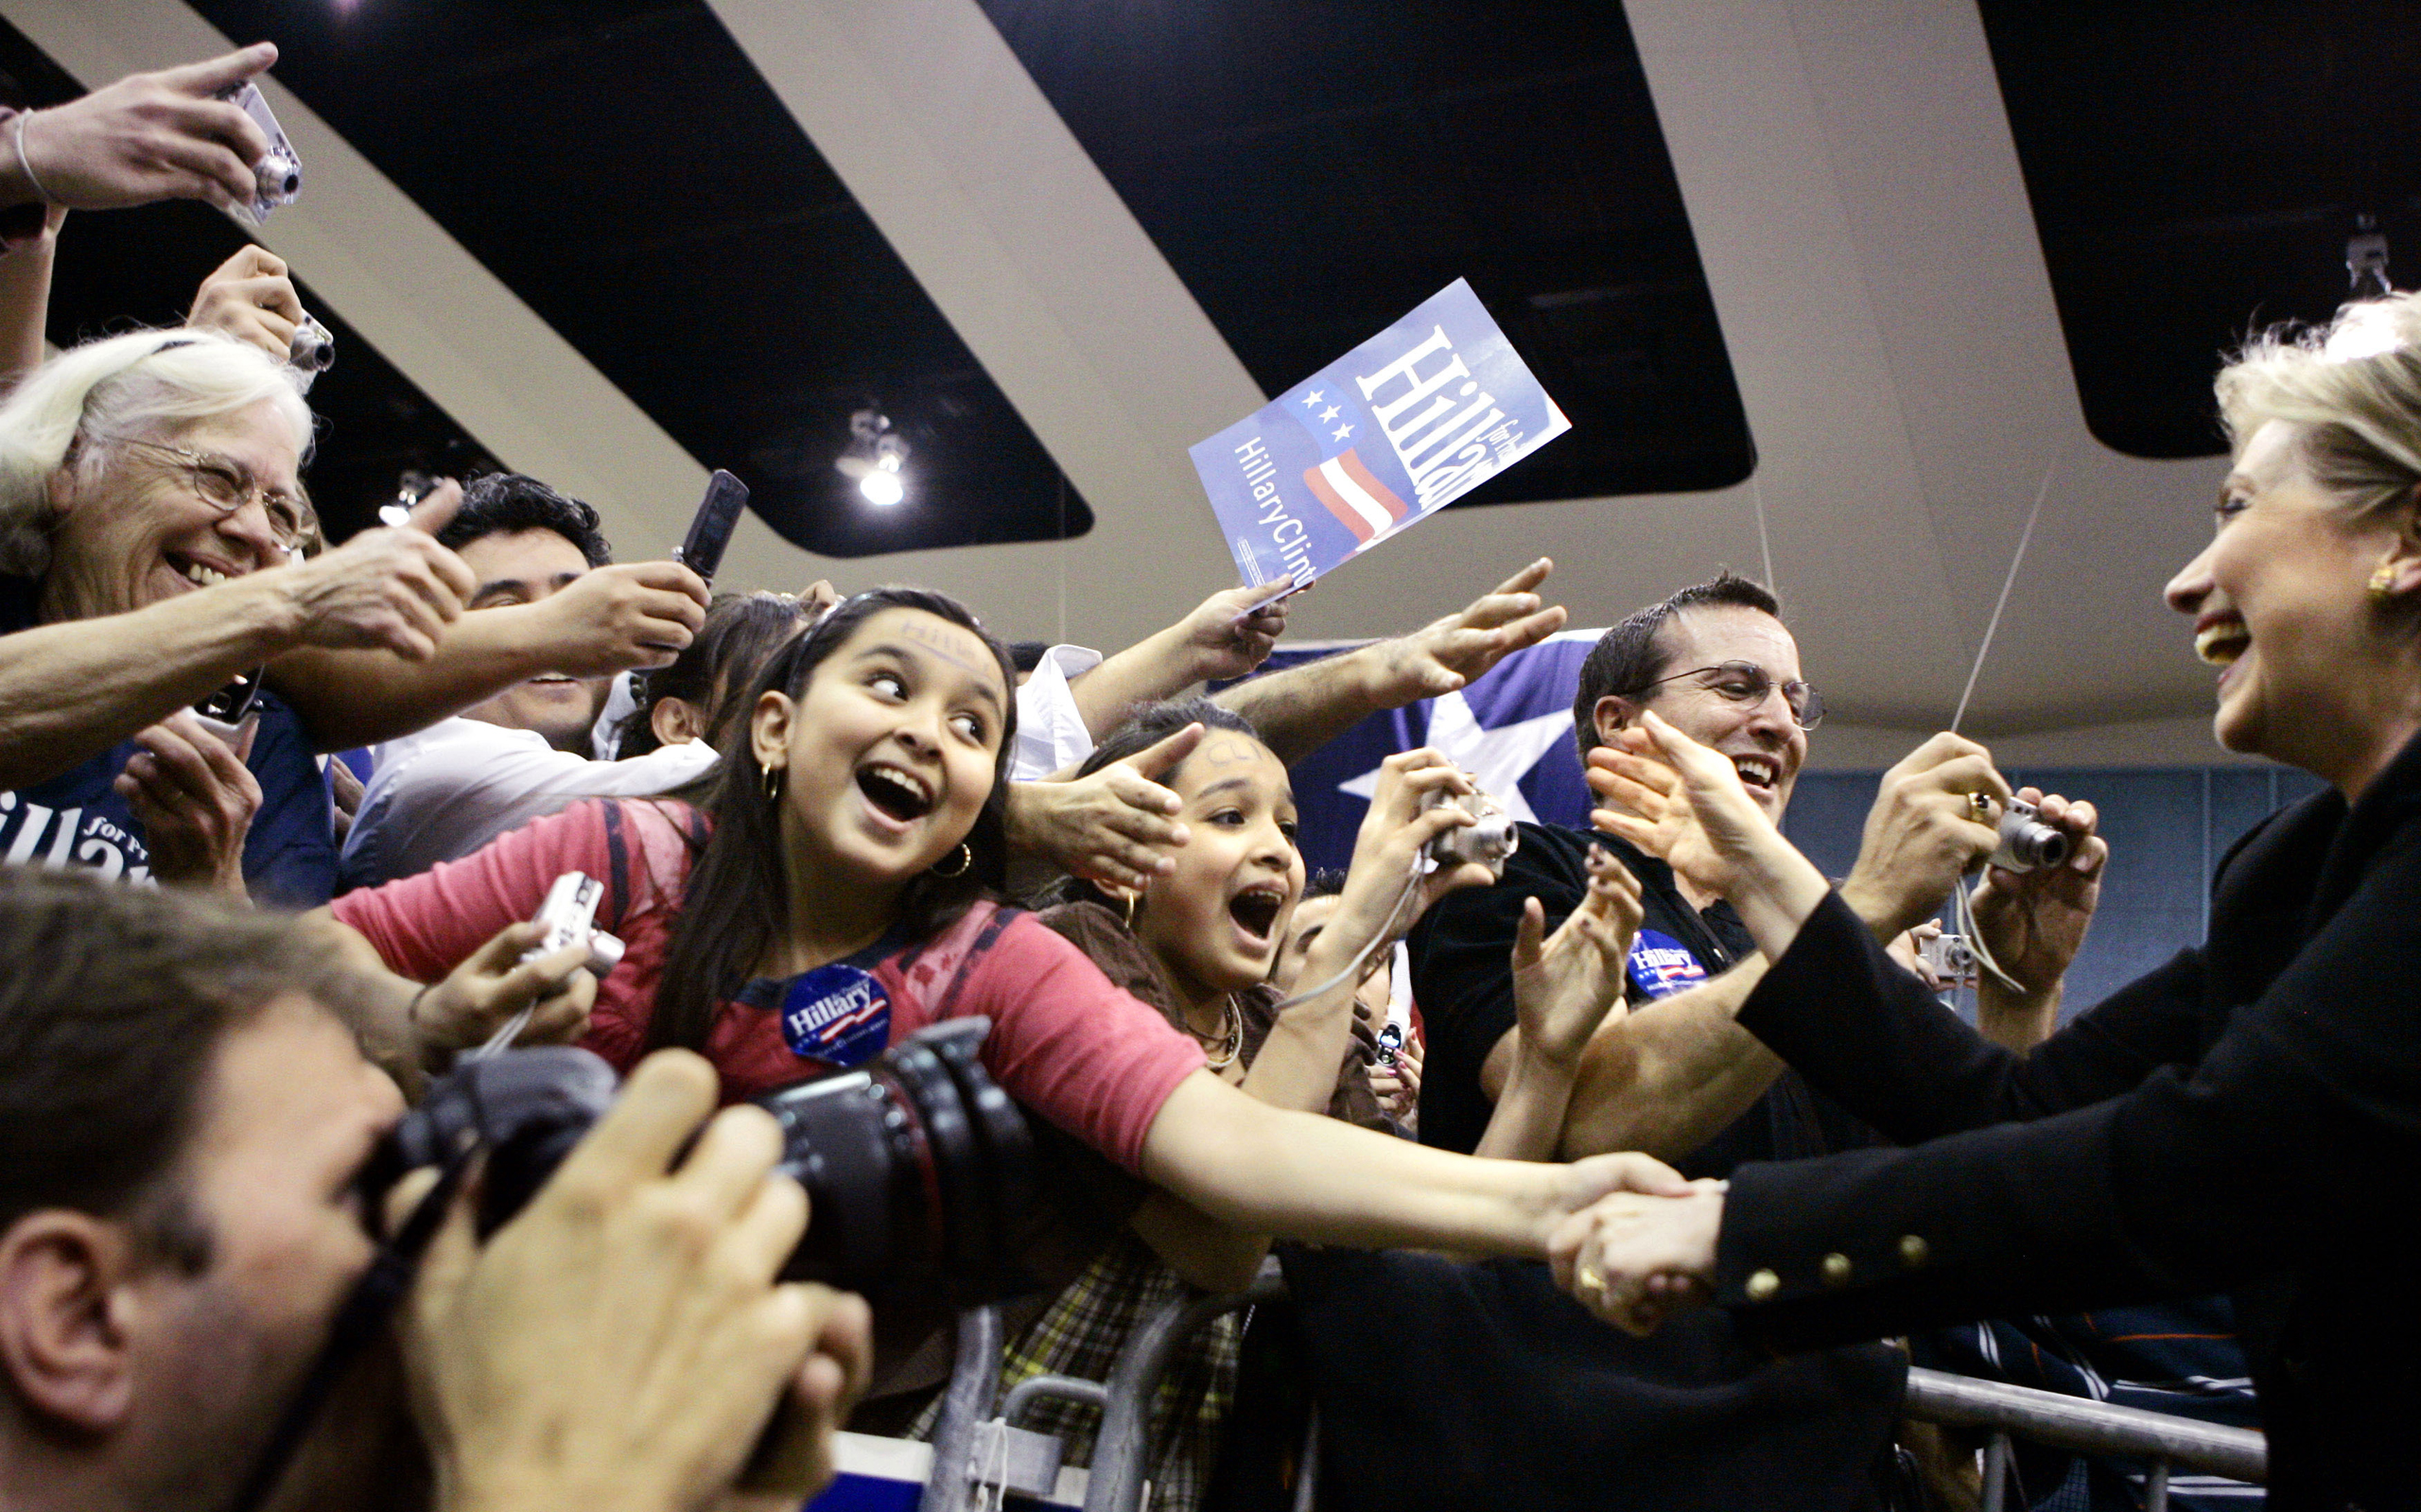 Demi Ramos, 11, shakes hands with Hillary Clinton as she appears at a campaign stop at the Waco Convention Center in Waco, Texas, on Feb. 29, 2008.